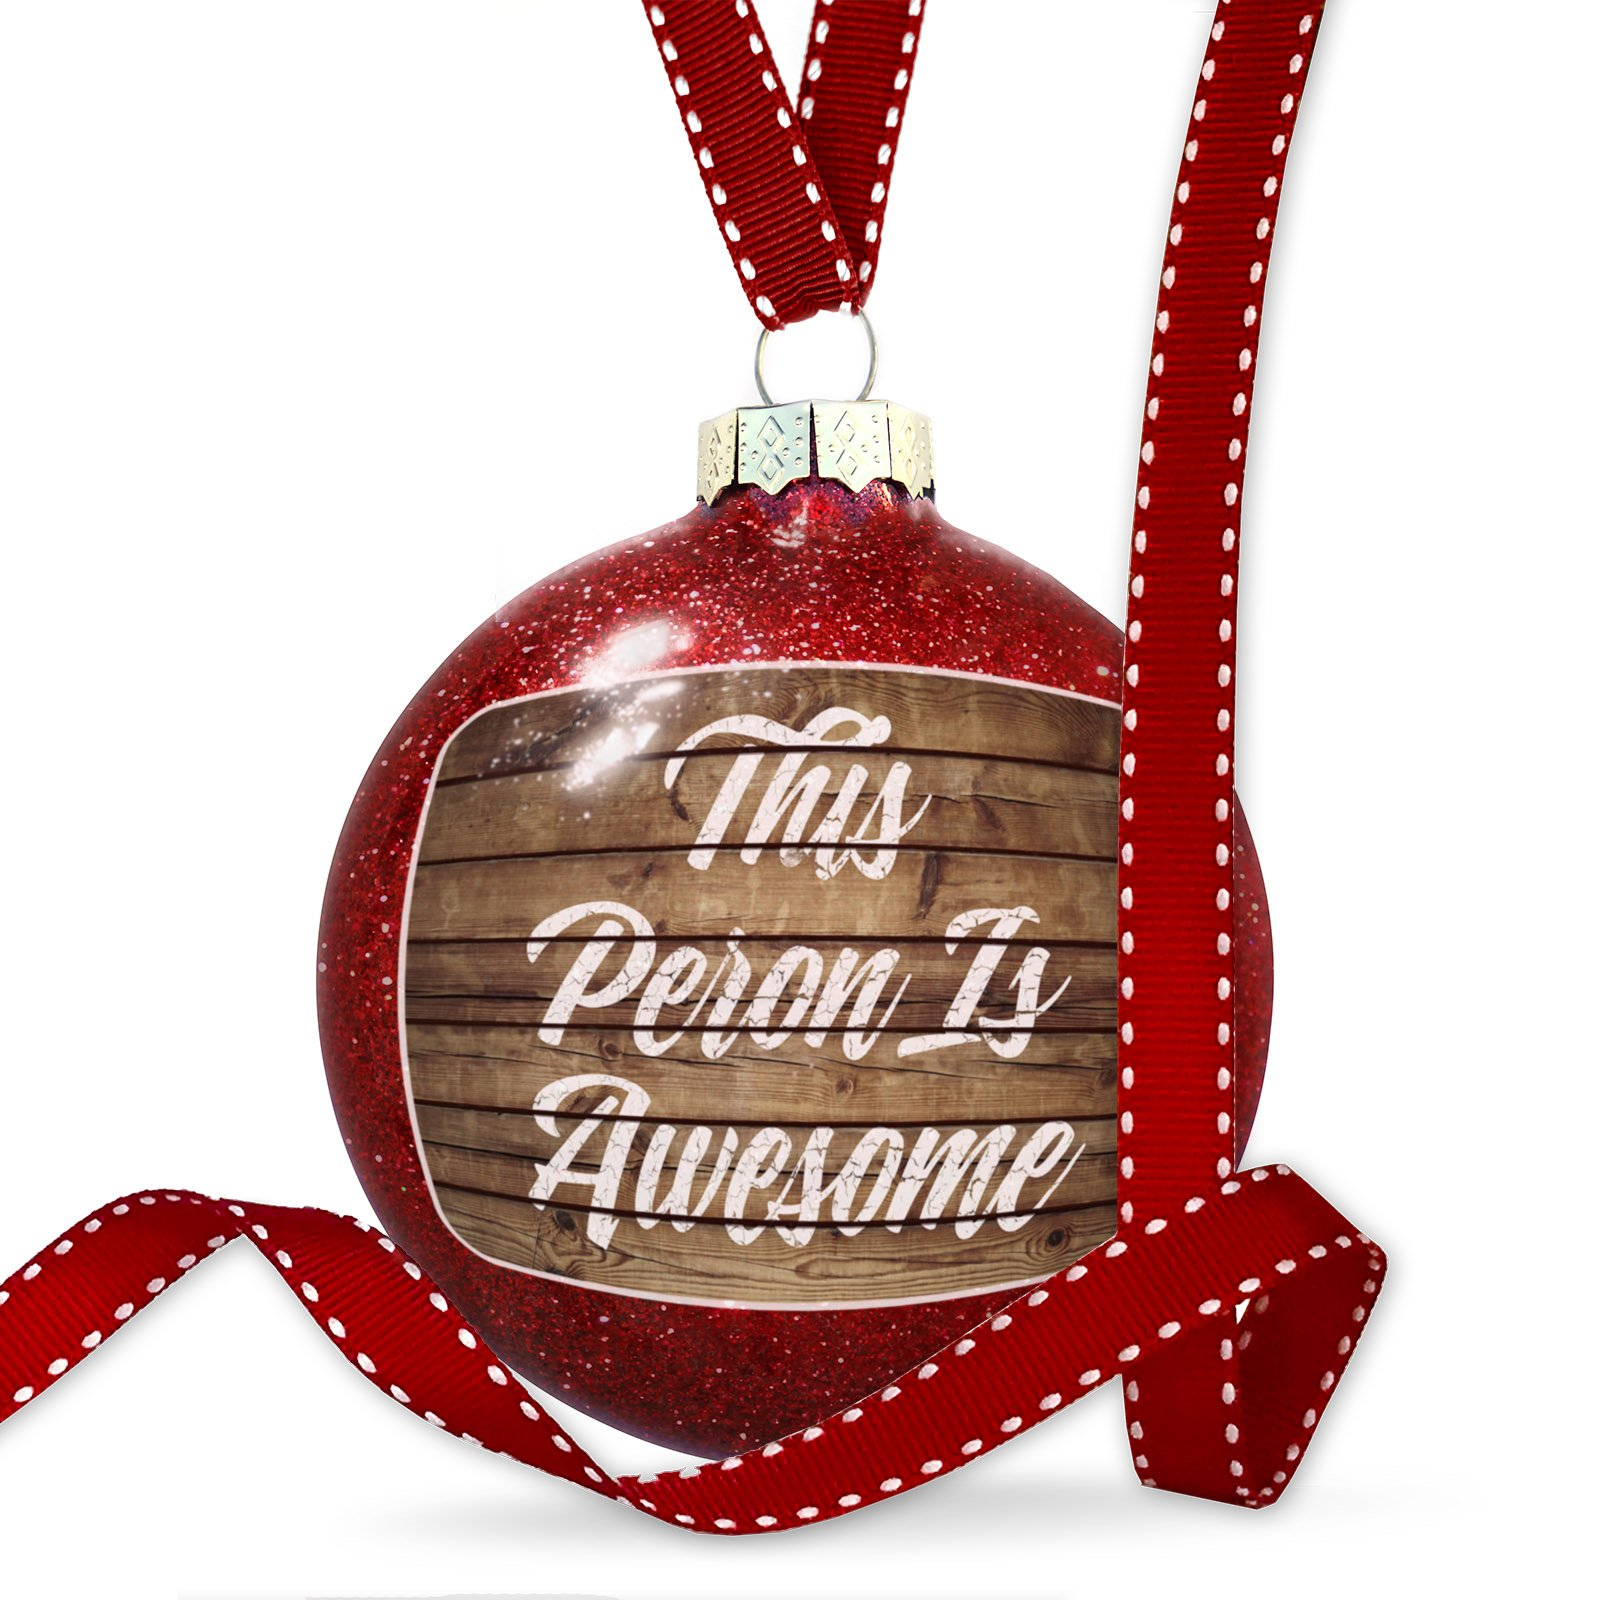 Christmas Decoration Painted Wood This Peron Is Awesome Ornament